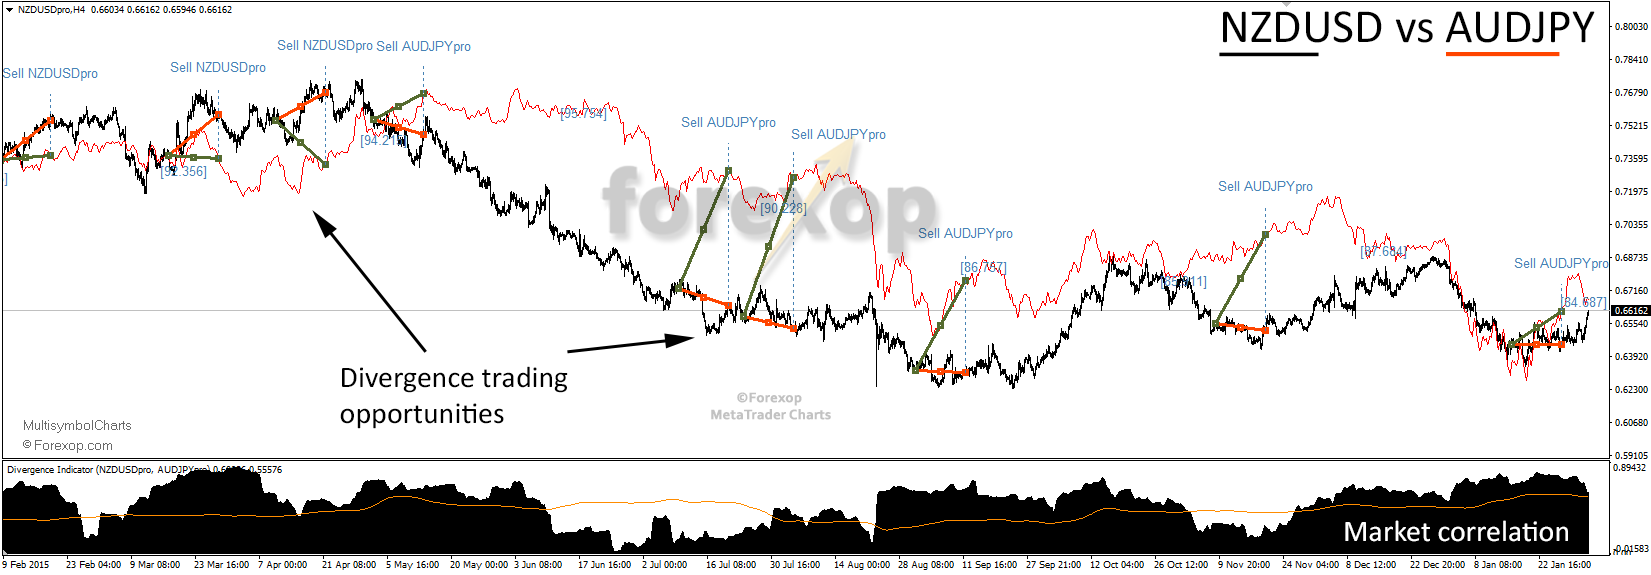 Figure 1: Demonstration of the indicator output while monitoring NZDUSD and AUDJPY.